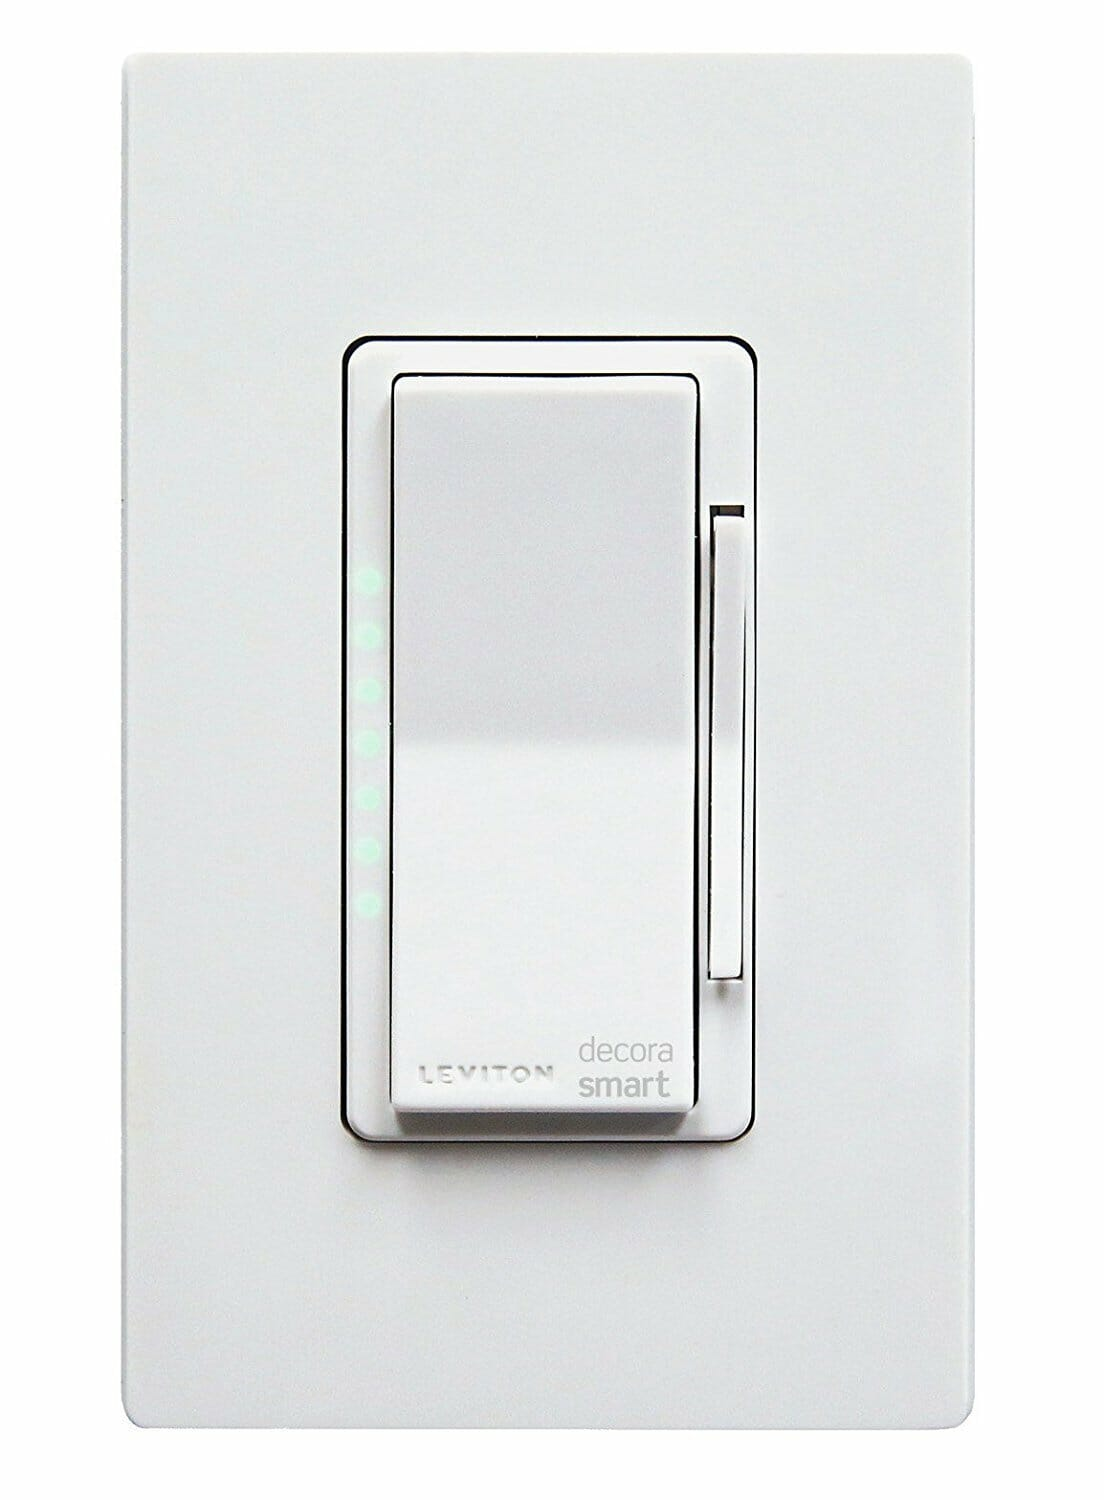 Homekit Light Switches Dimmers Review Automation Because Smart Require Both Hot And Neutral Leviton Decora Dimmer